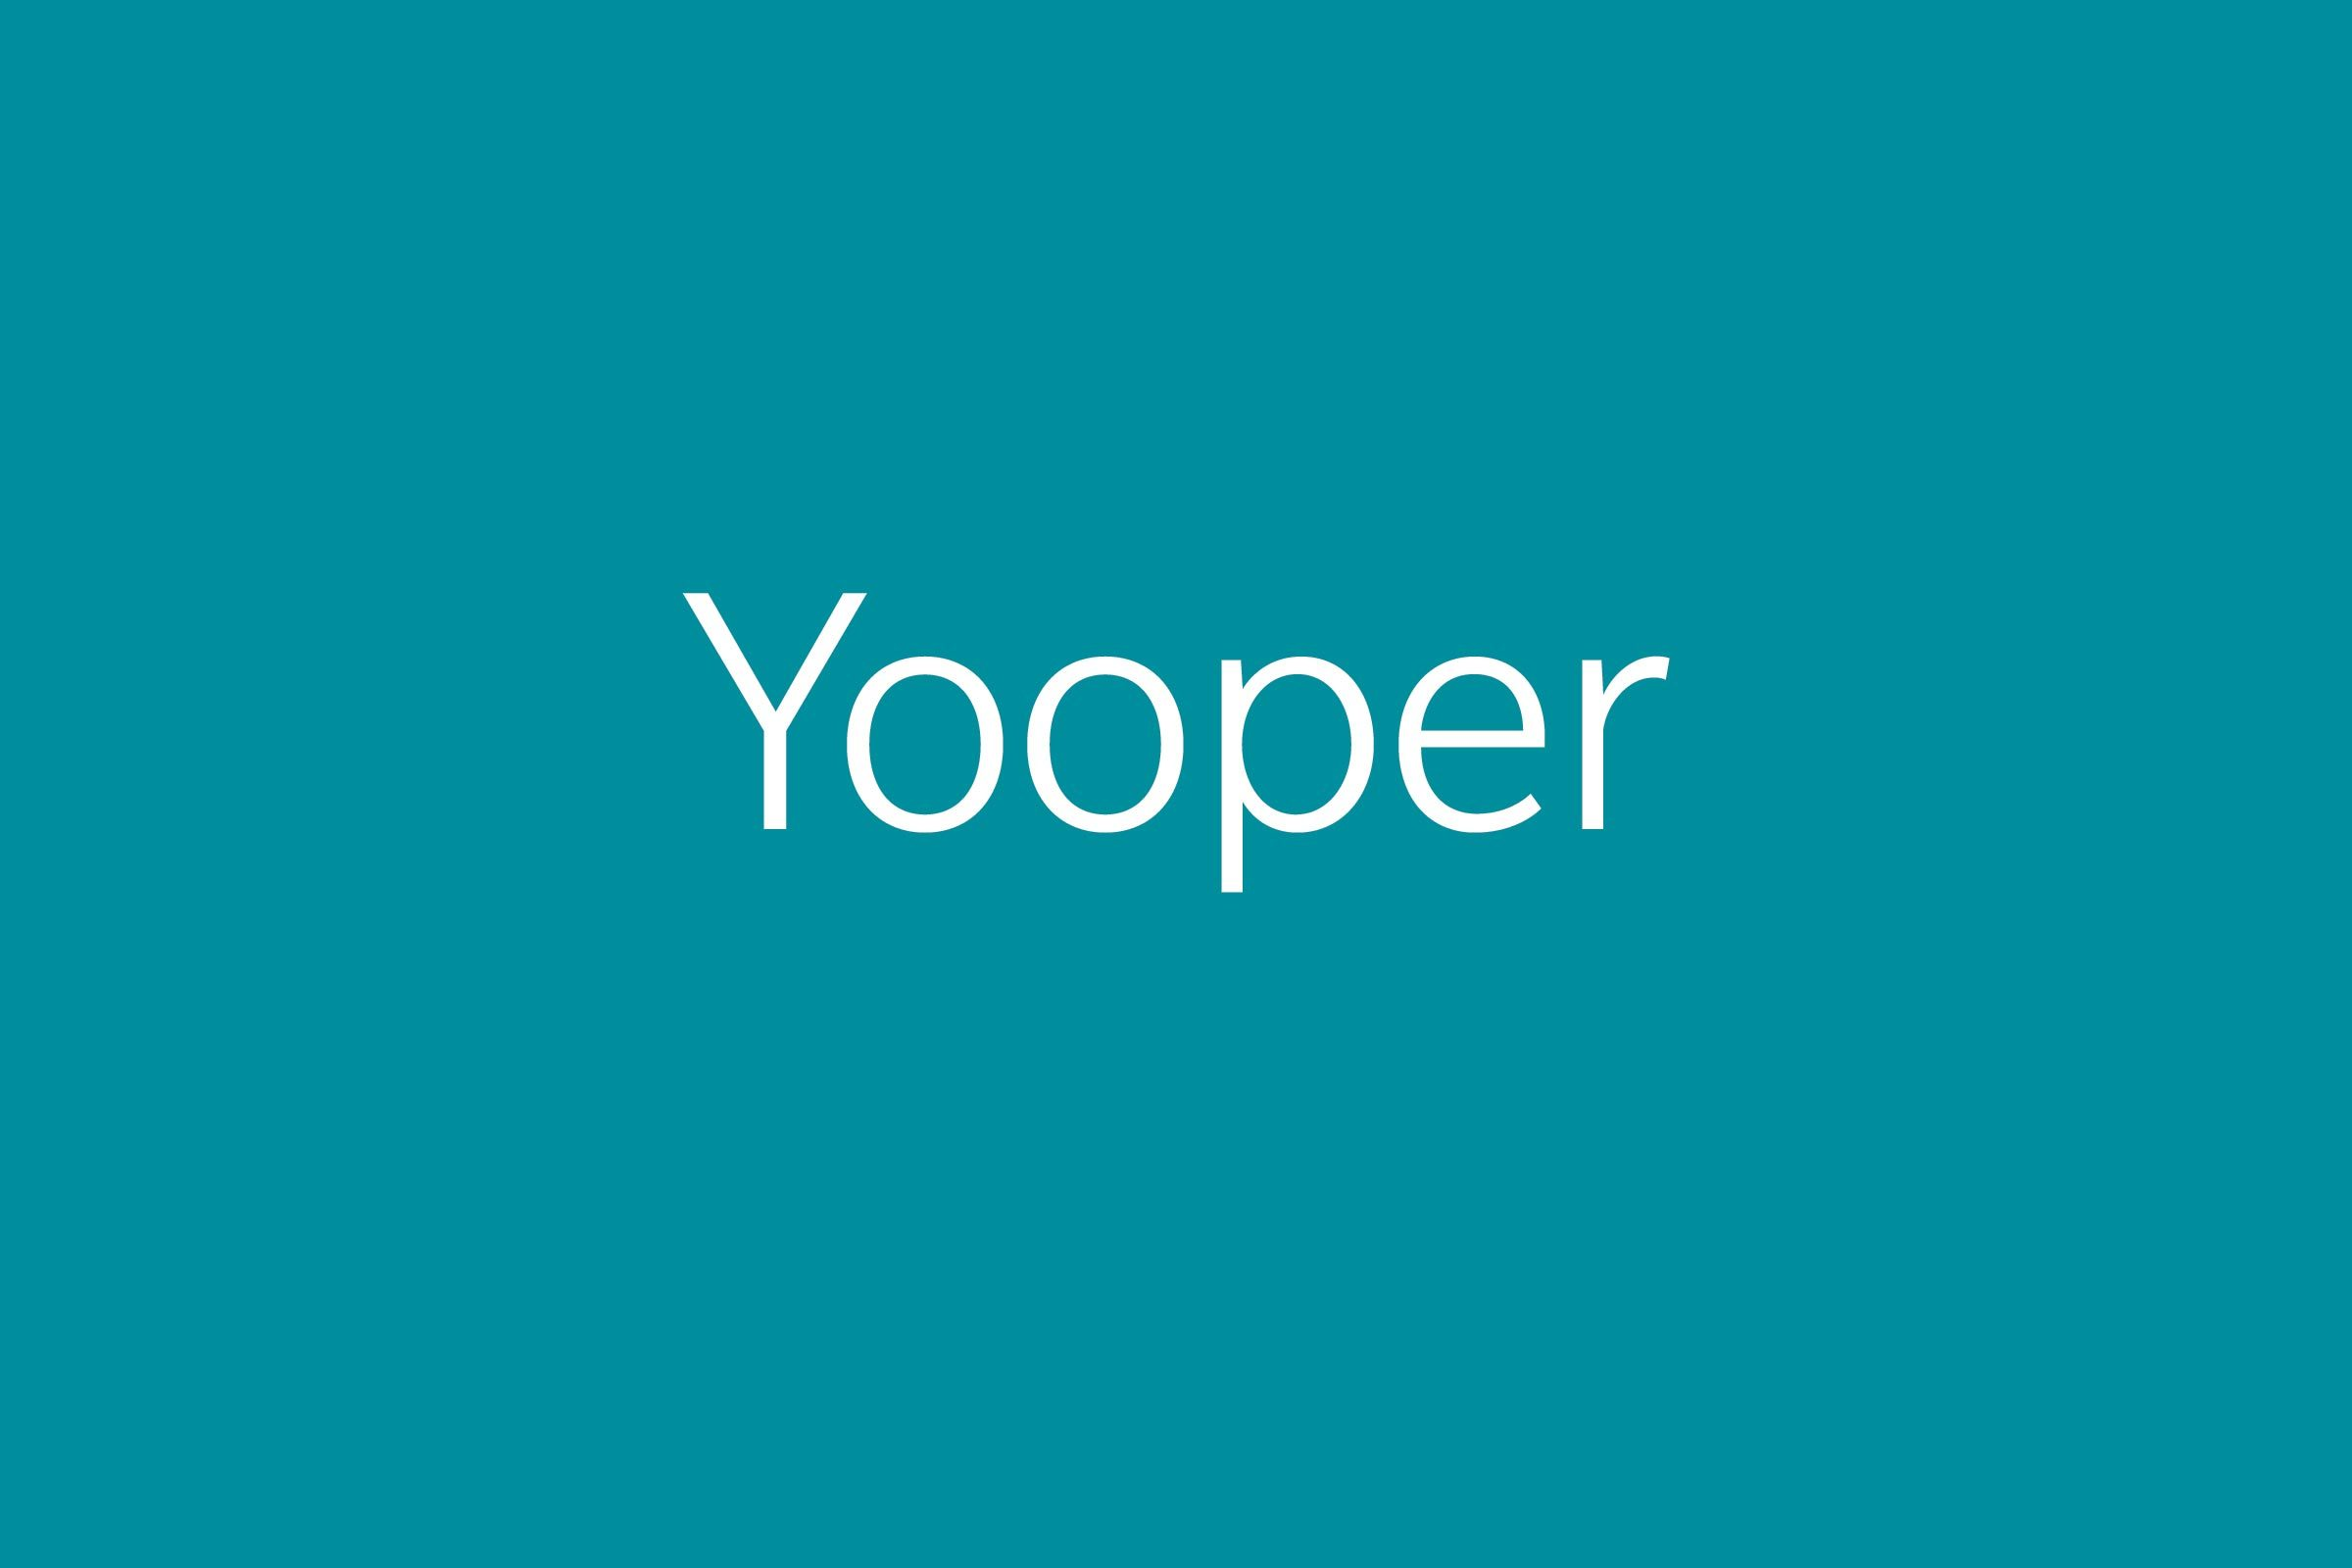 yooper funny word Funny words